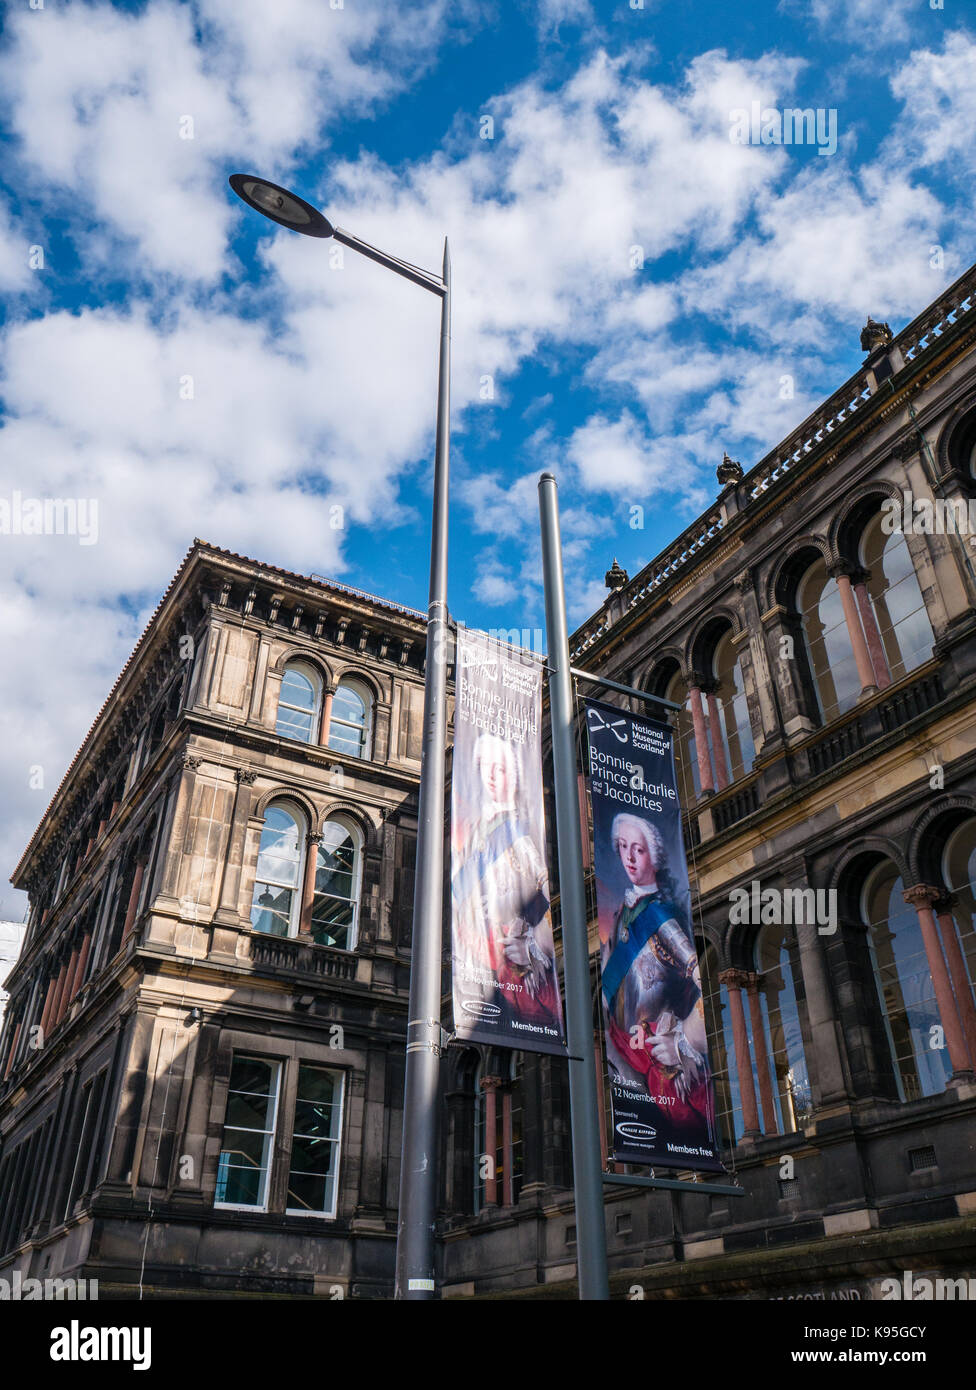 Banners outside of National Museum of Scotland, Old Town, Edinburgh, Scotland. - Stock Image